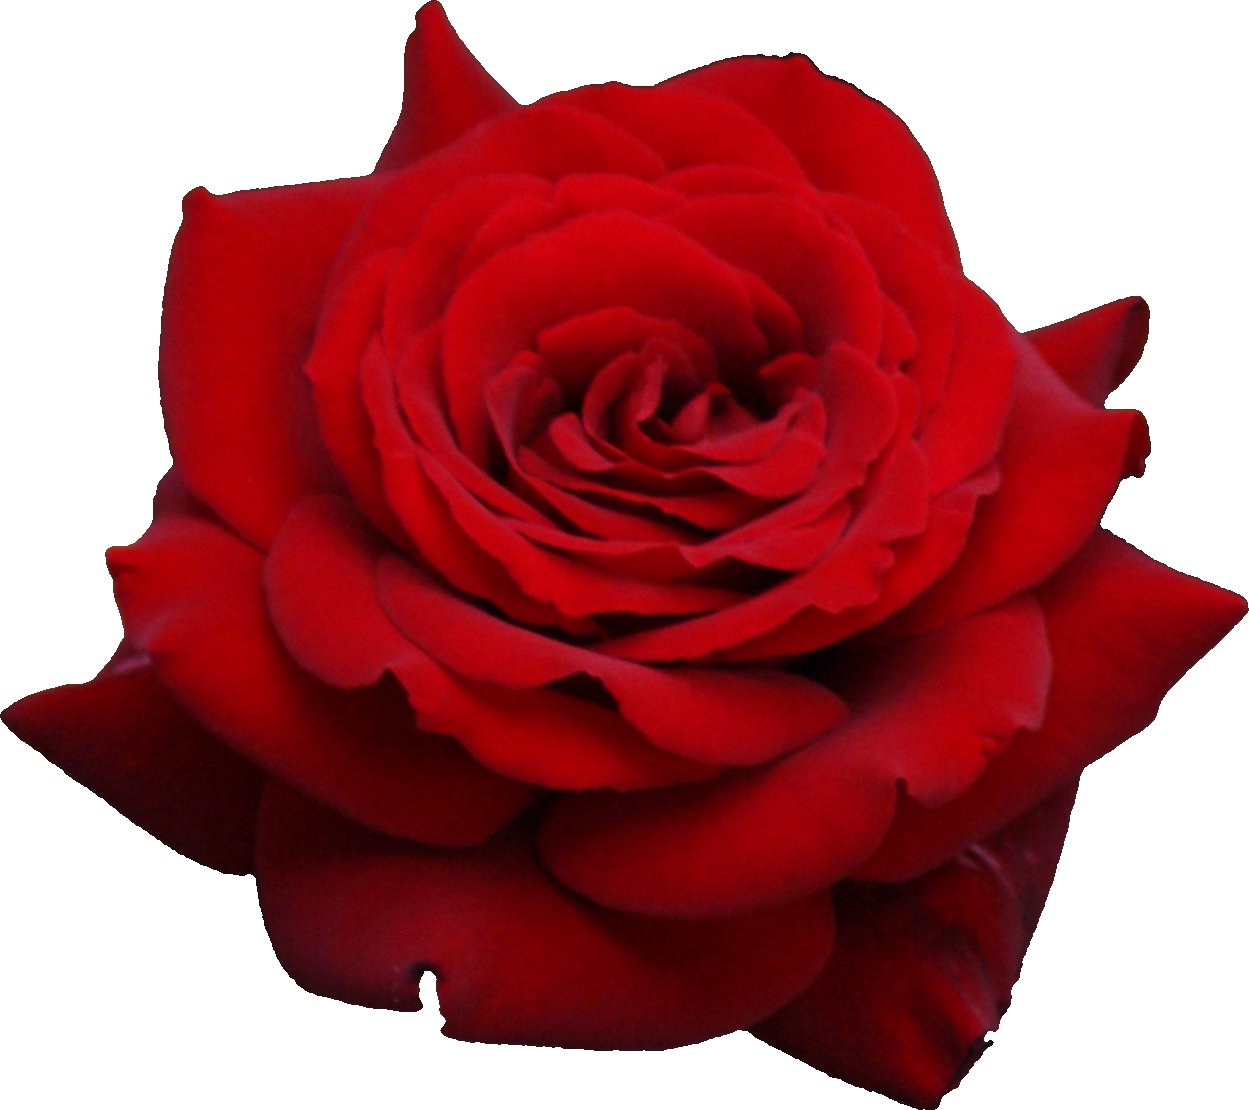 Rose flower png. Images free download red